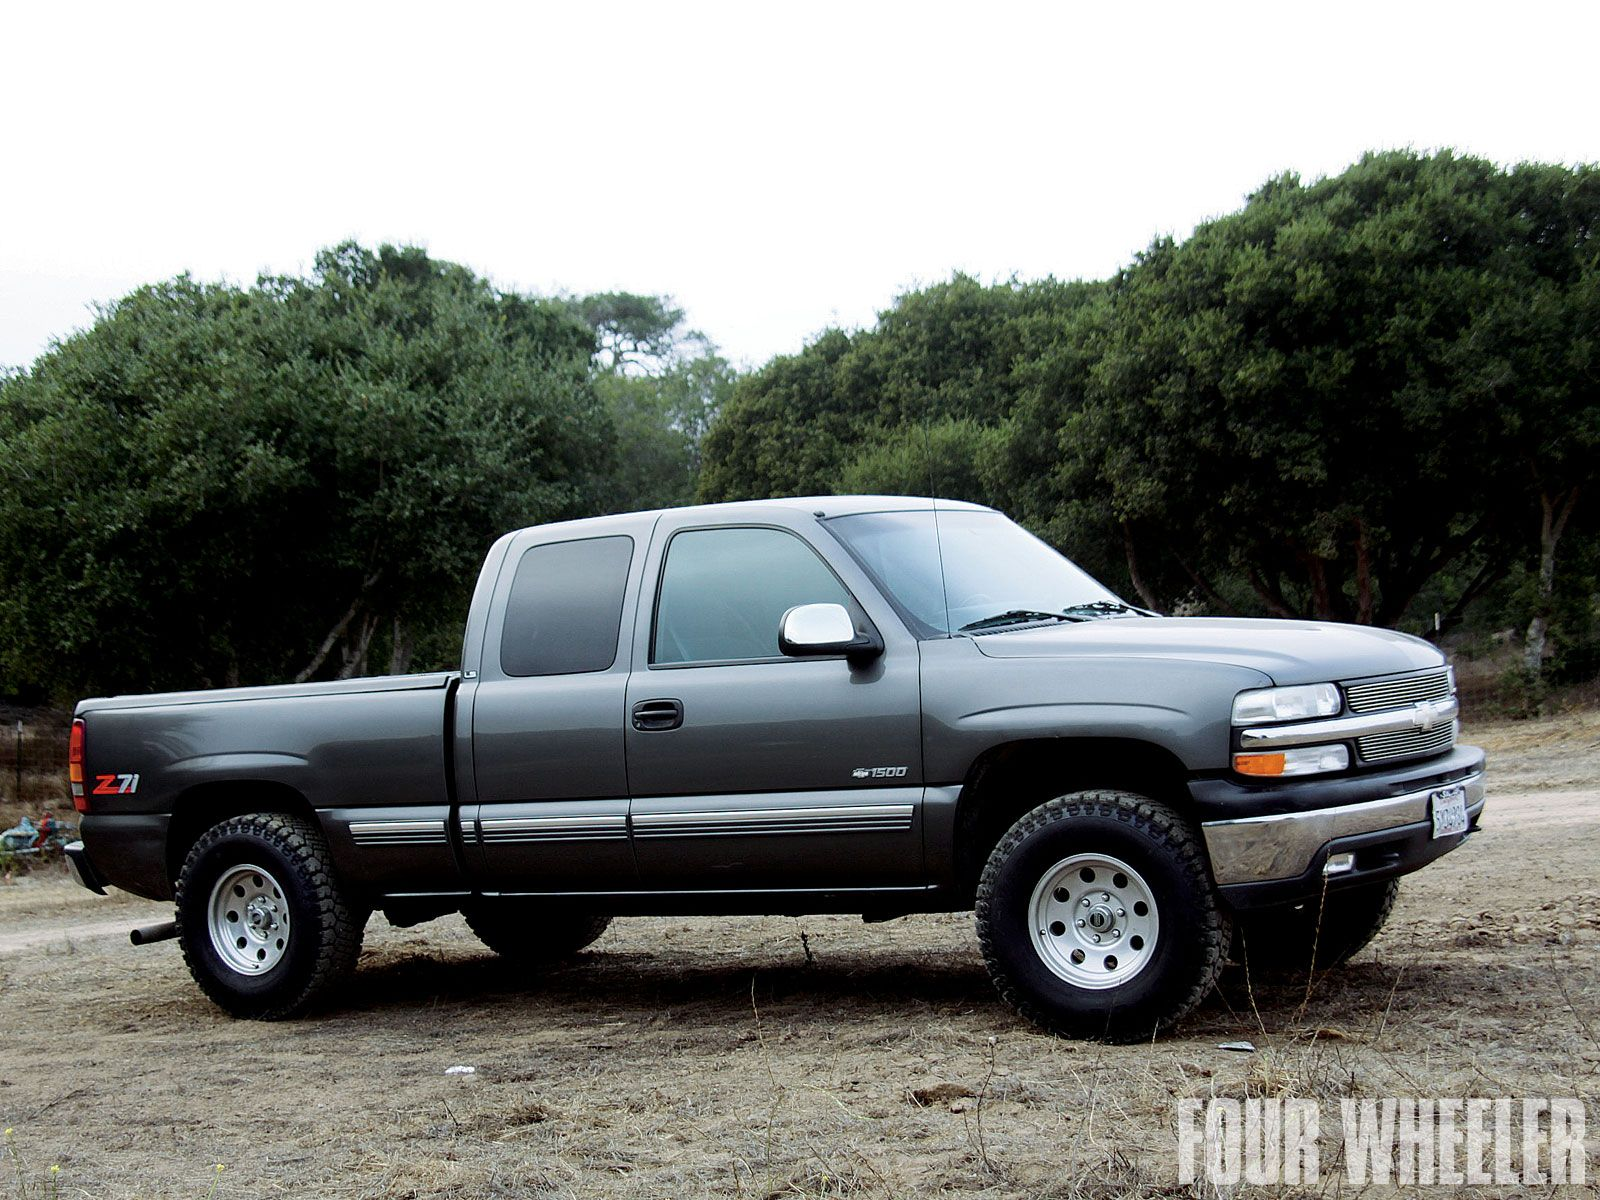 Chevy silverado 1500 extended cab 4x4 google search